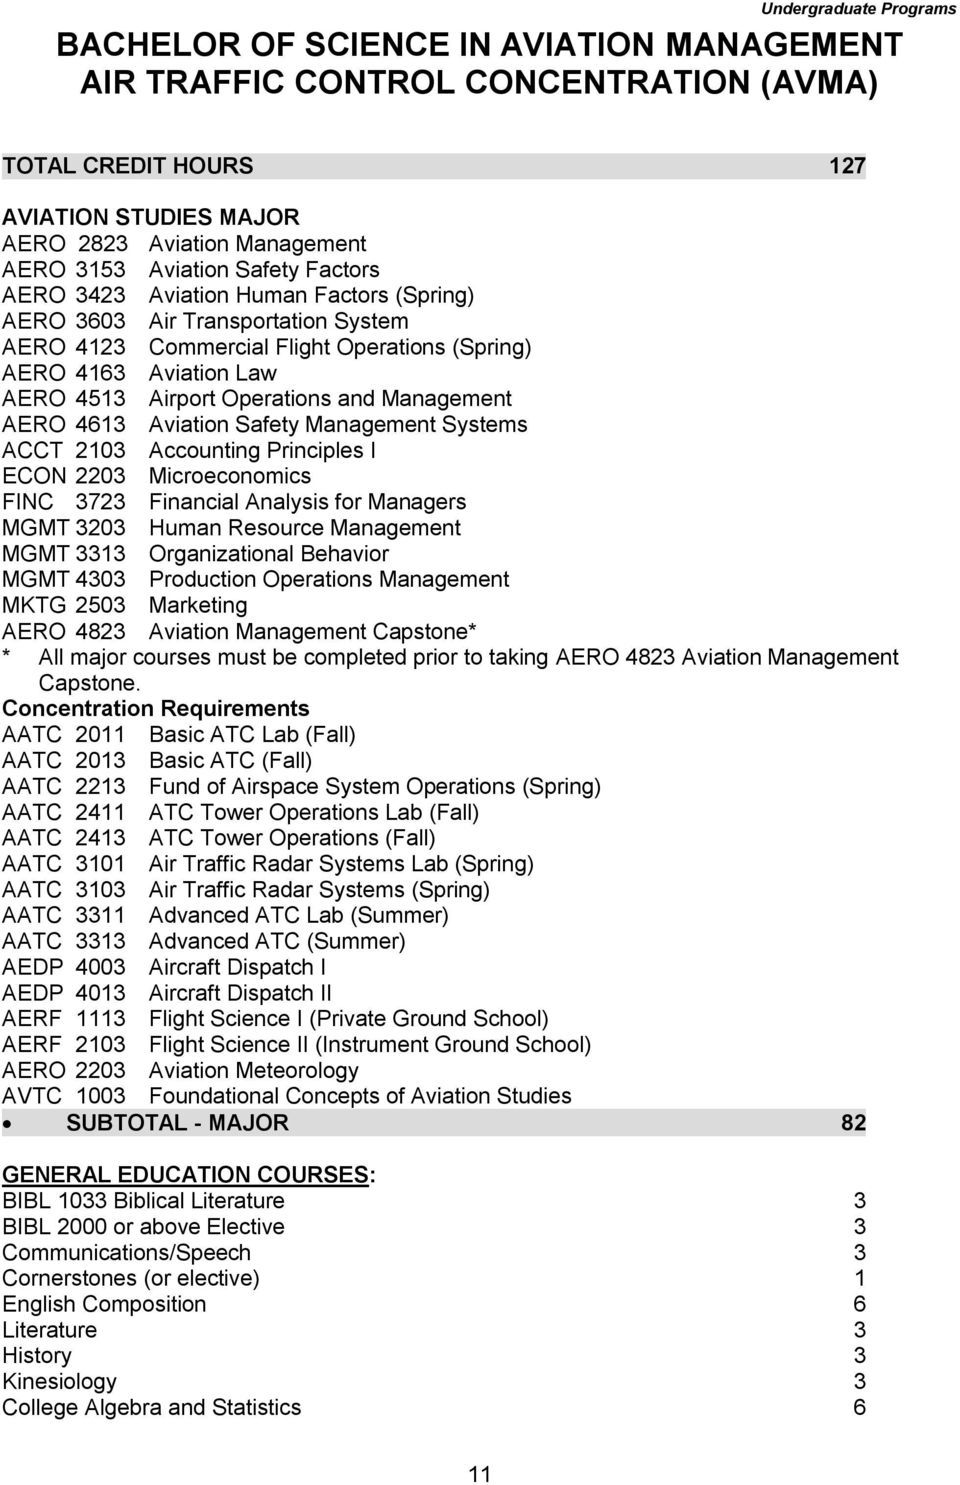 Operations and Management AERO 4613 Aviation Safety Management Systems ACCT 2103 Accounting Principles I ECON 2203 Microeconomics FINC 3723 Financial Analysis for Managers MGMT 3203 Human Resource